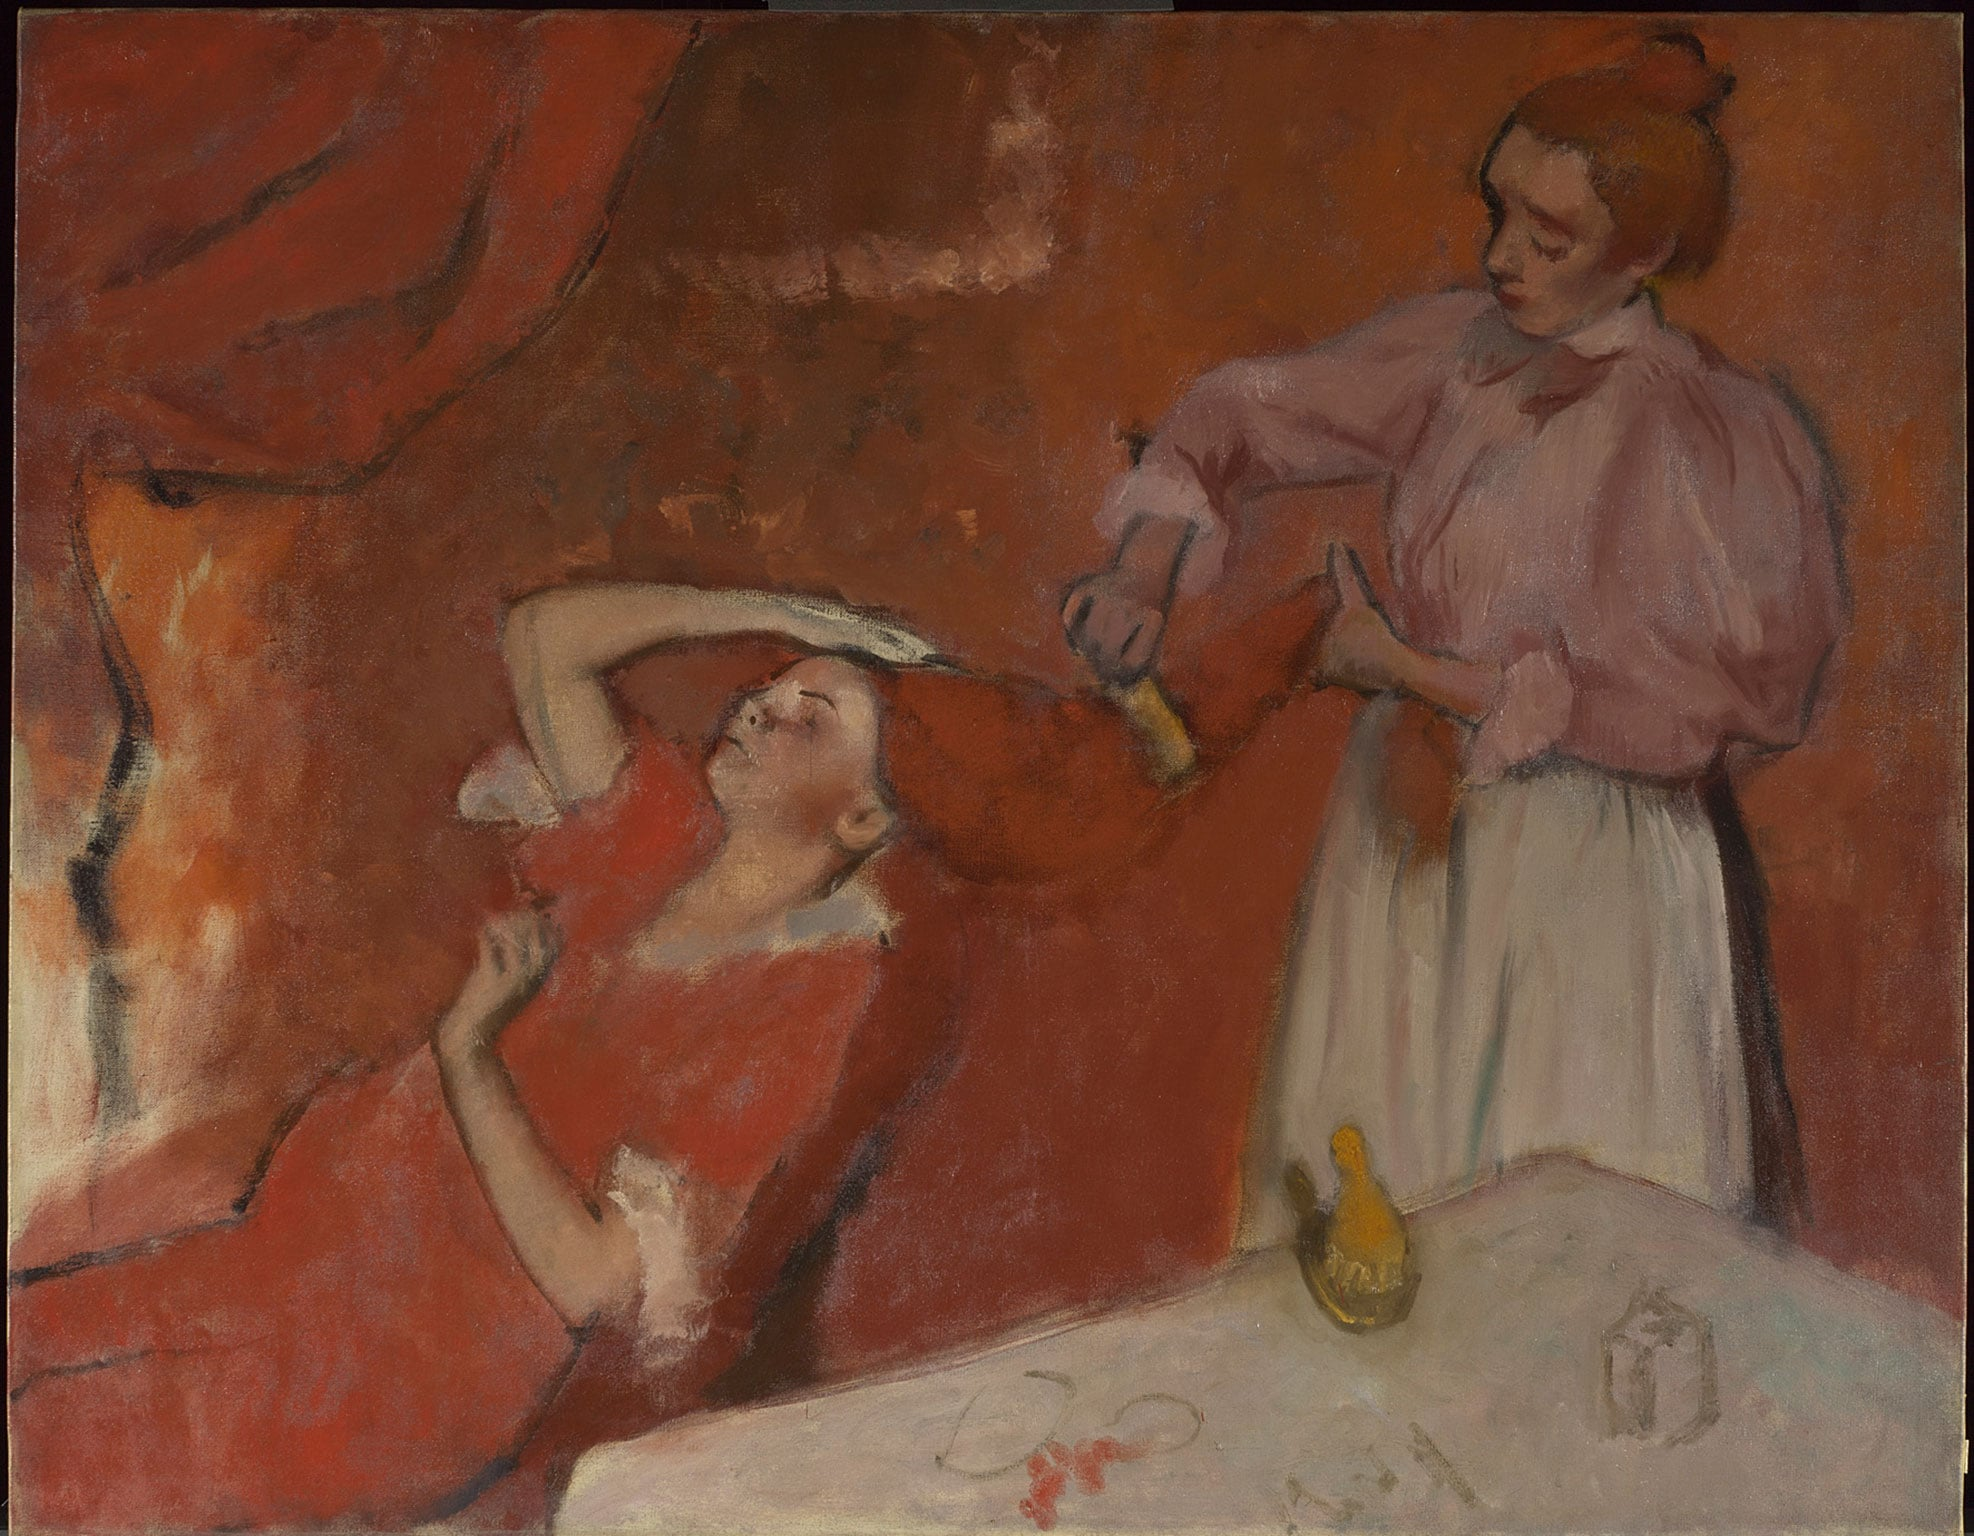 3. Making Colour, National Gallery, London, 18 June - 17 September. 50% off with National Art Pass - Hilaire-Germain-Edgar Degas, Combing the Hair ('La Coiffure'), about 1896 © The National Gallery, London